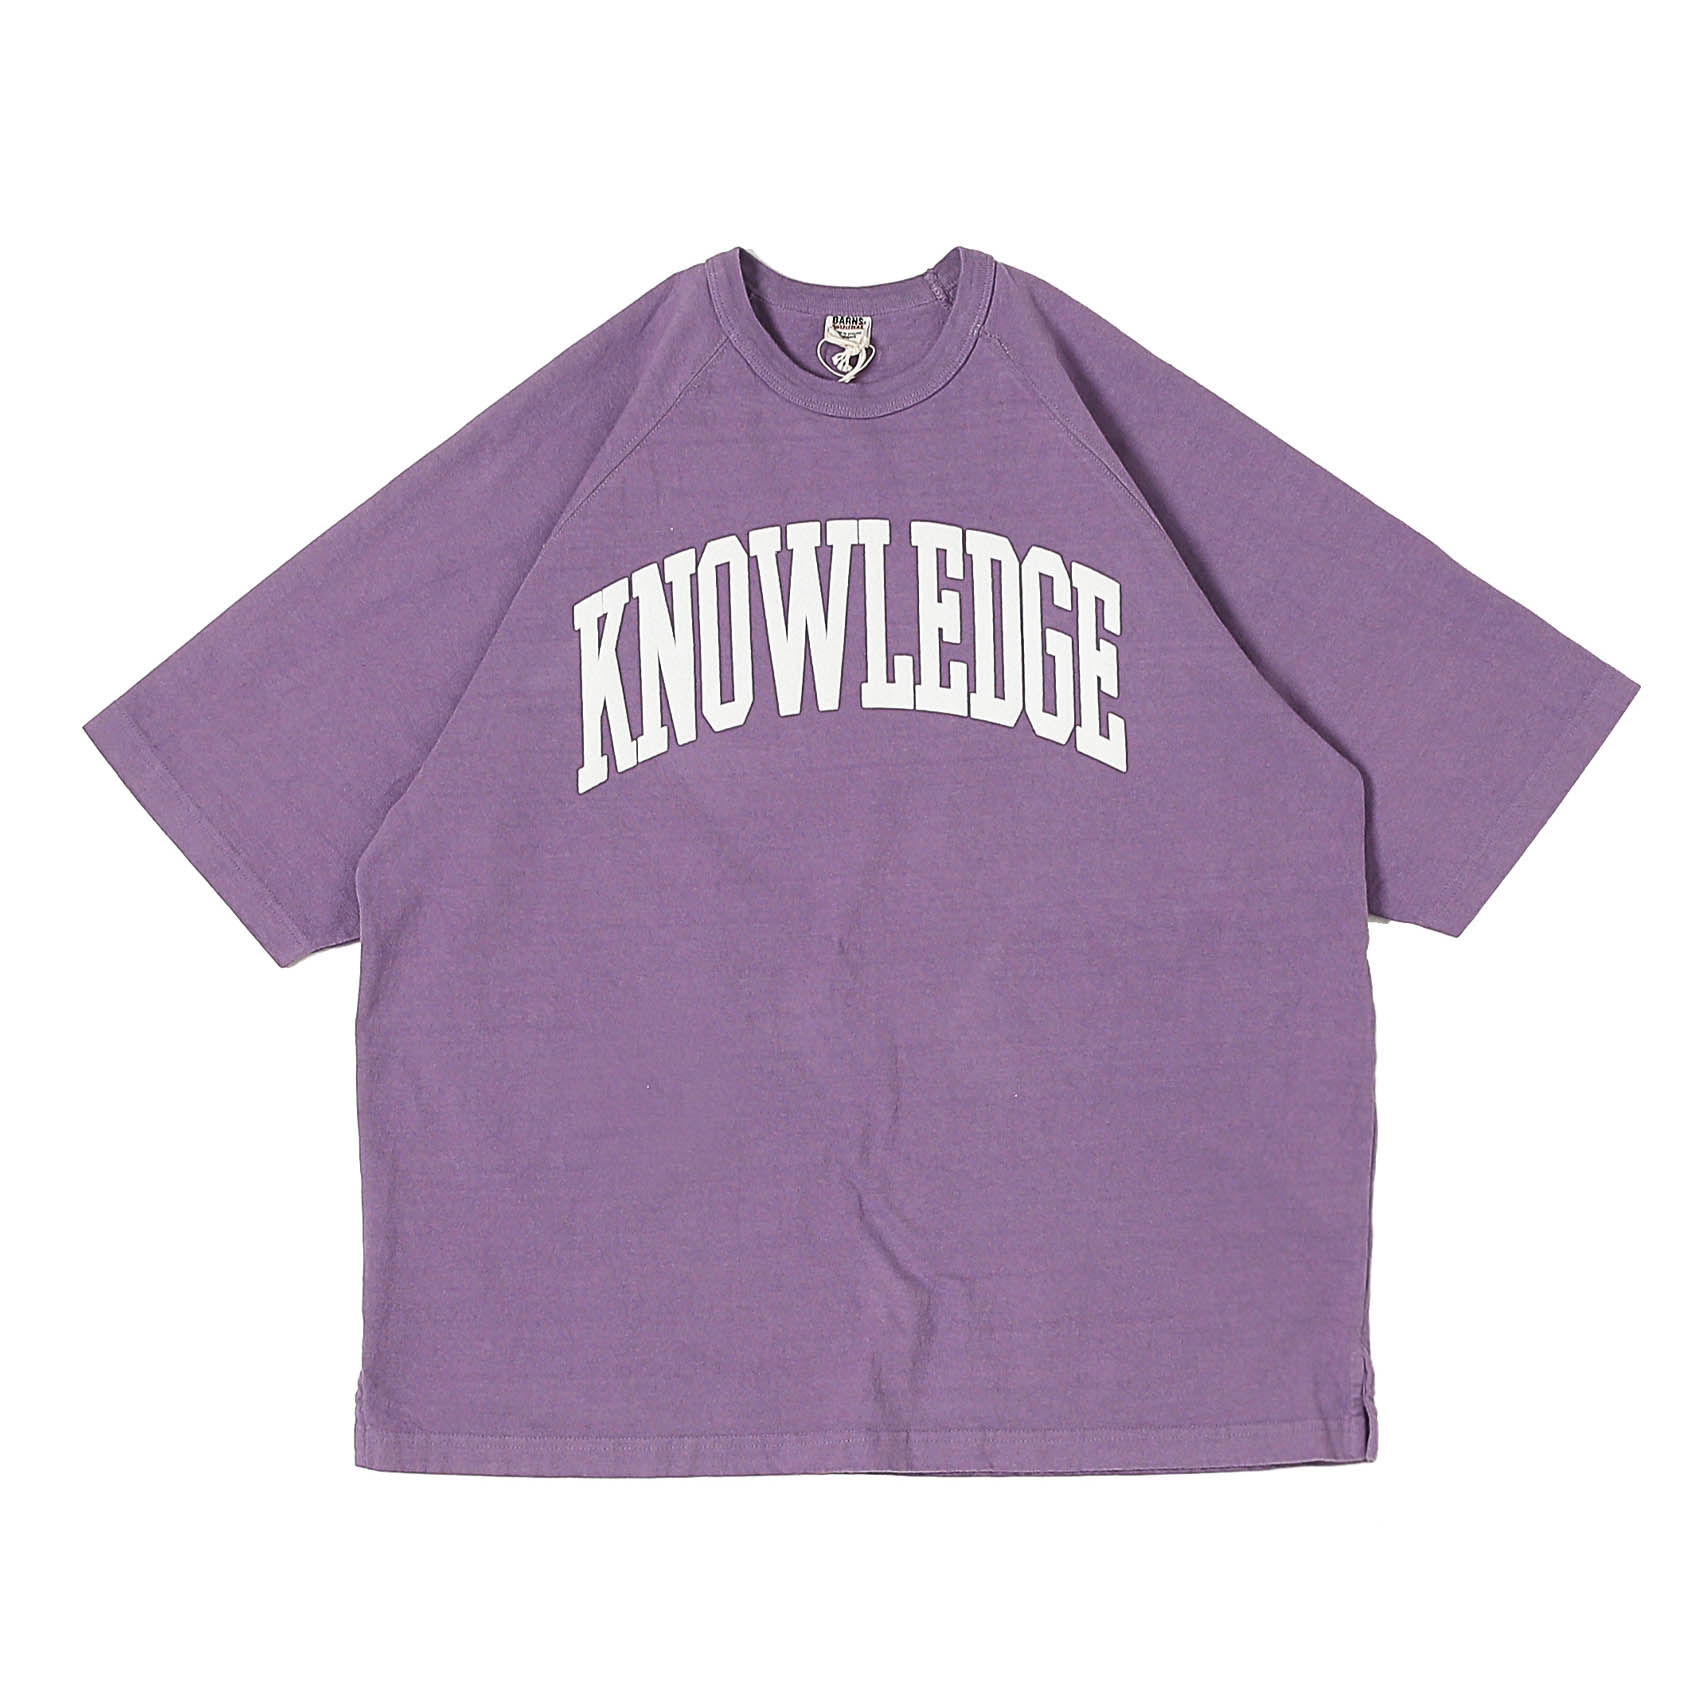 S/S PRINTED TEE - KNOWLEDGE PURPLE